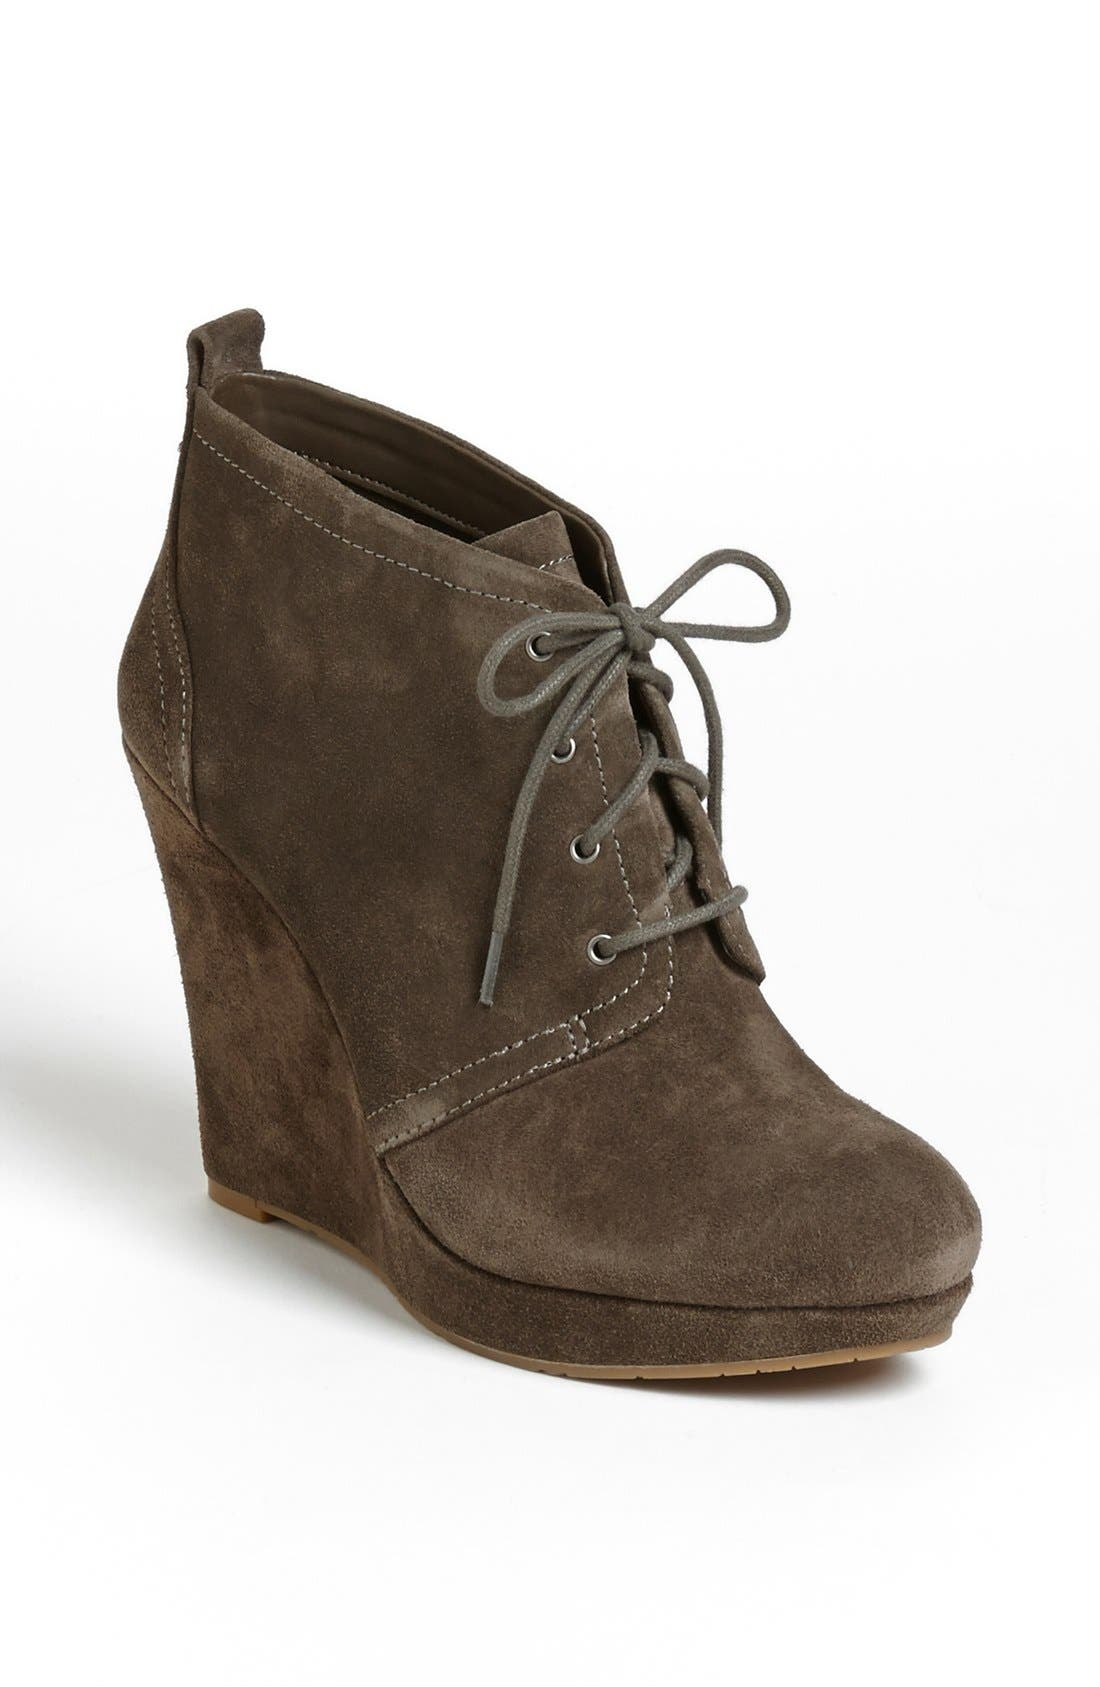 Alternate Image 1 Selected - Jessica Simpson 'Catcher' Bootie